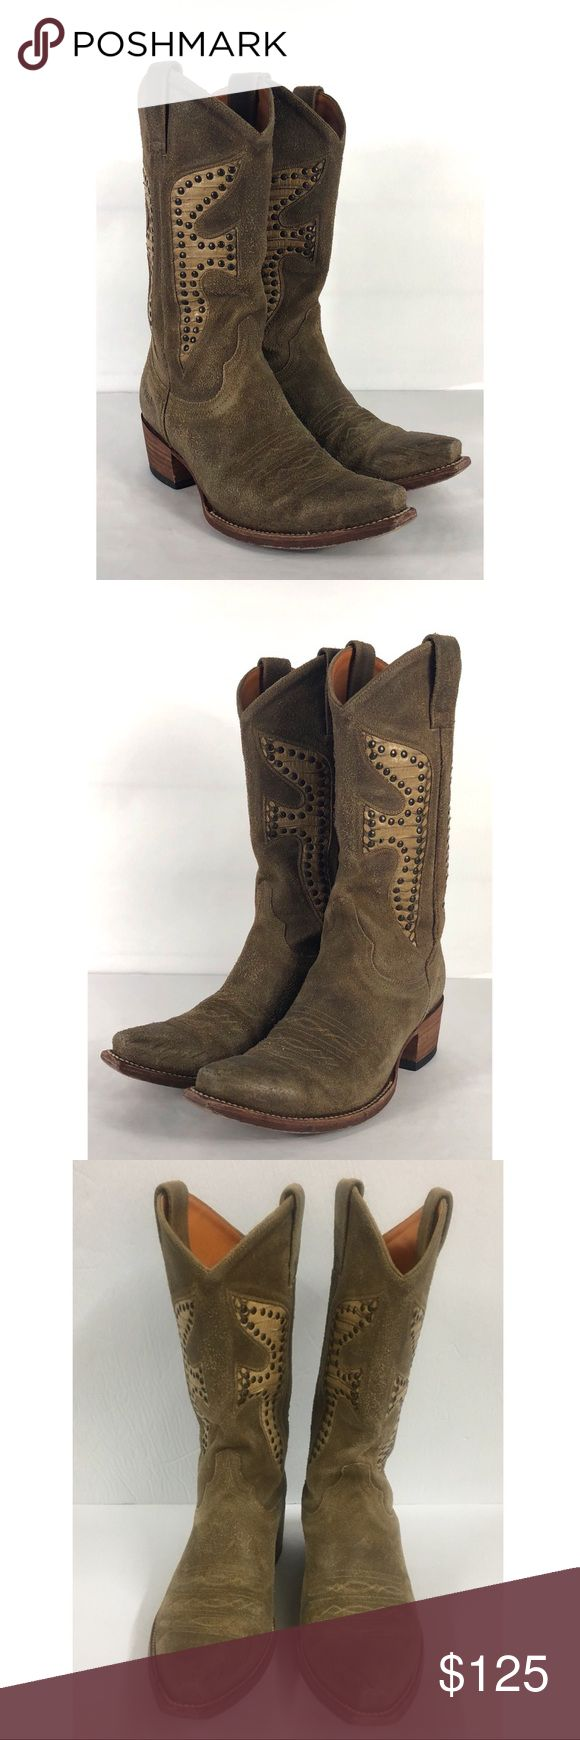 Frye Daisy Duke Cowboy Boots Leather Snakeskin These adorable boots are tan leather suede snakeskin with studs on each side, (1 stud missing on left boot) still have lots of wear left in them. Some scuffing & creasing from wear.   B-73 Frye Shoes Heeled Boots